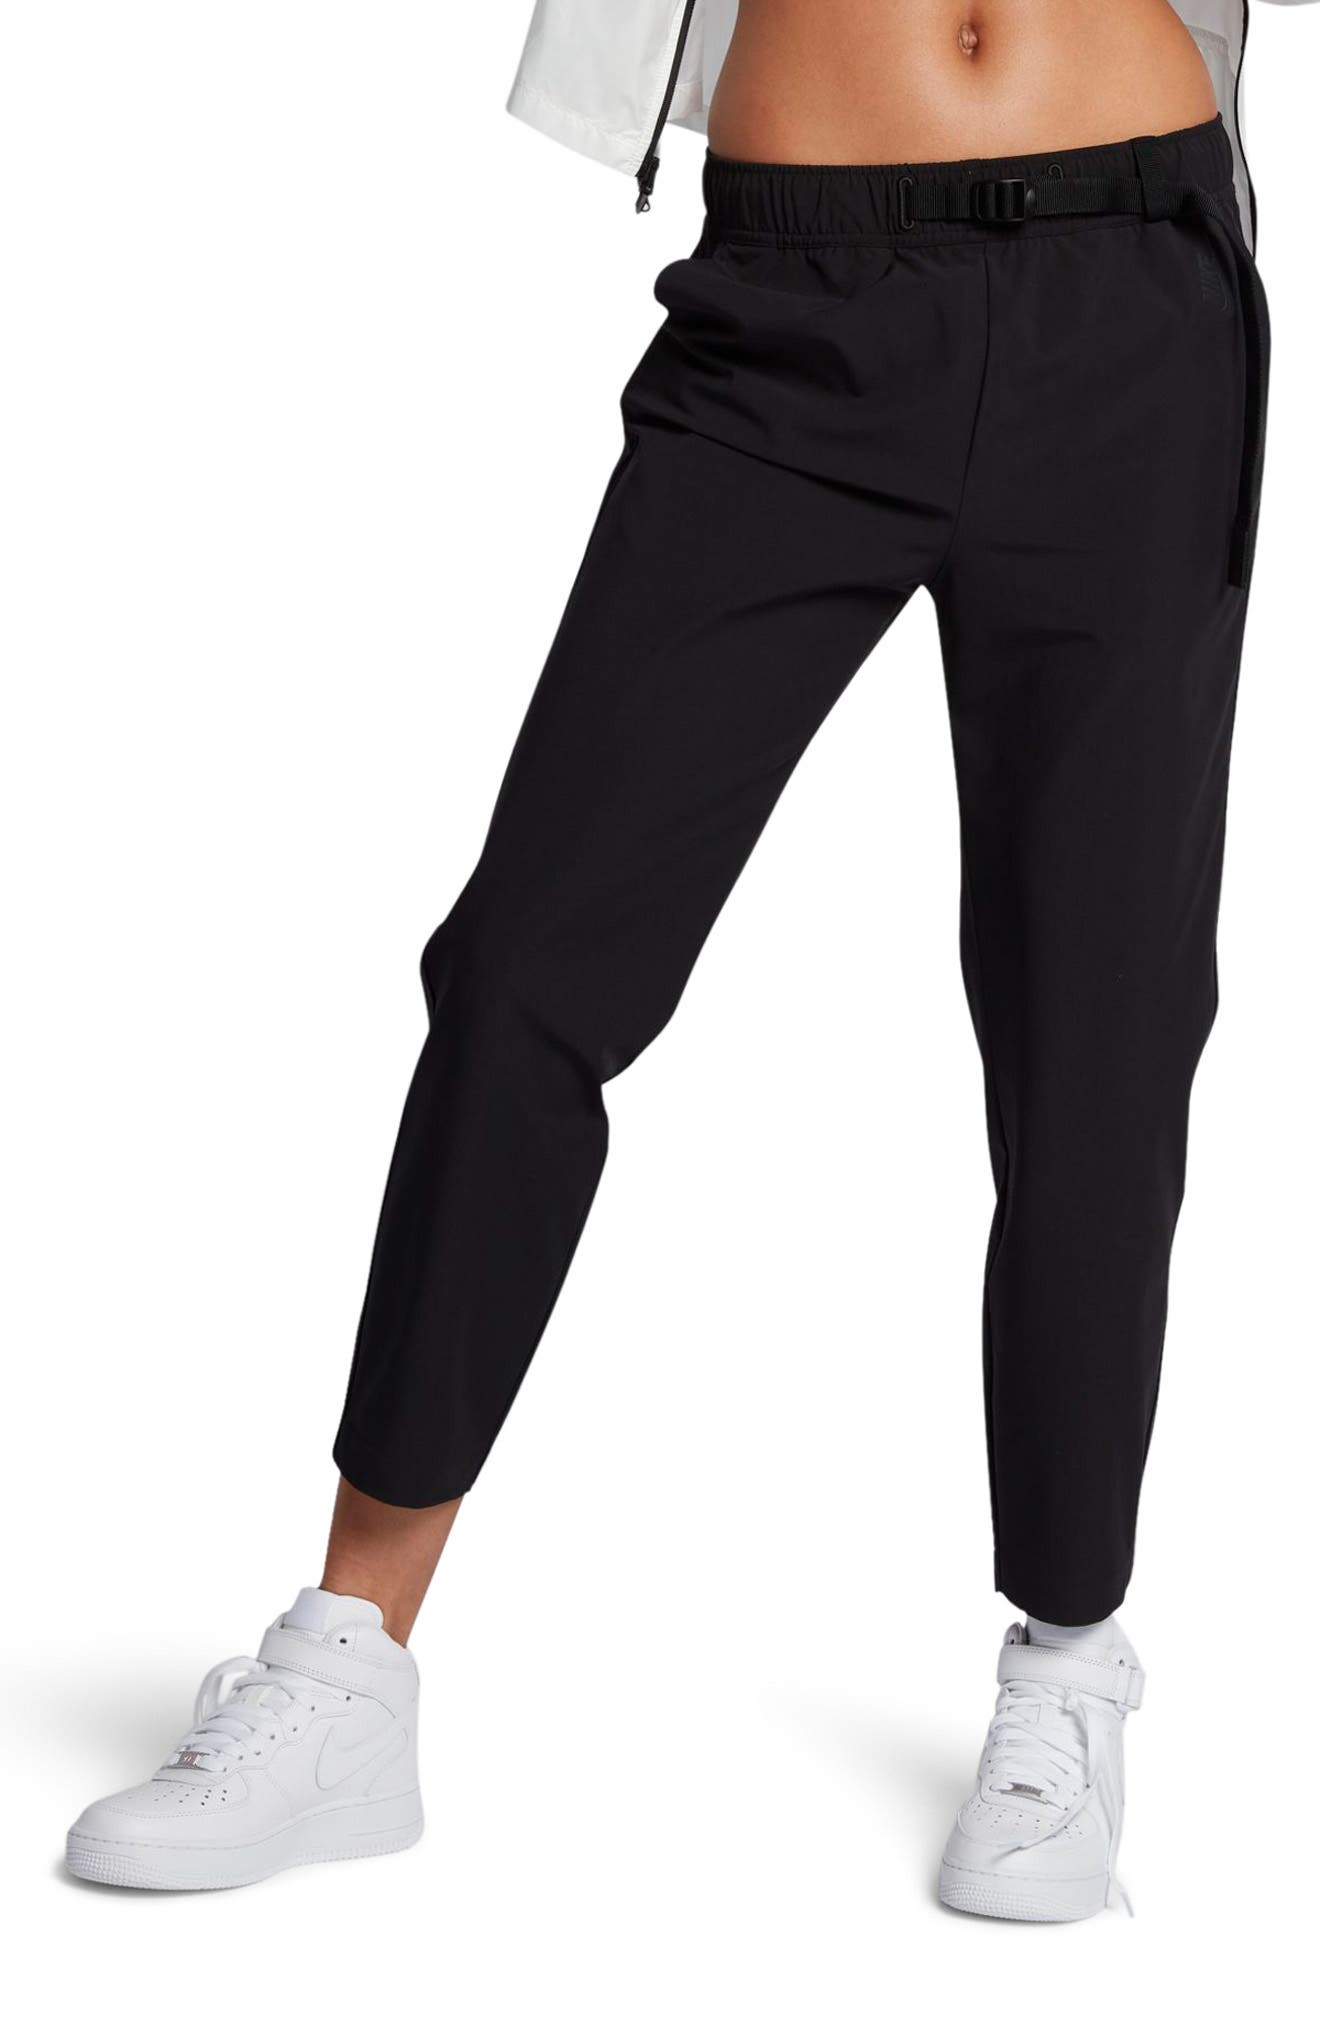 NikeLab Essentials Women's Stretch Woven Pants,                             Main thumbnail 1, color,                             010